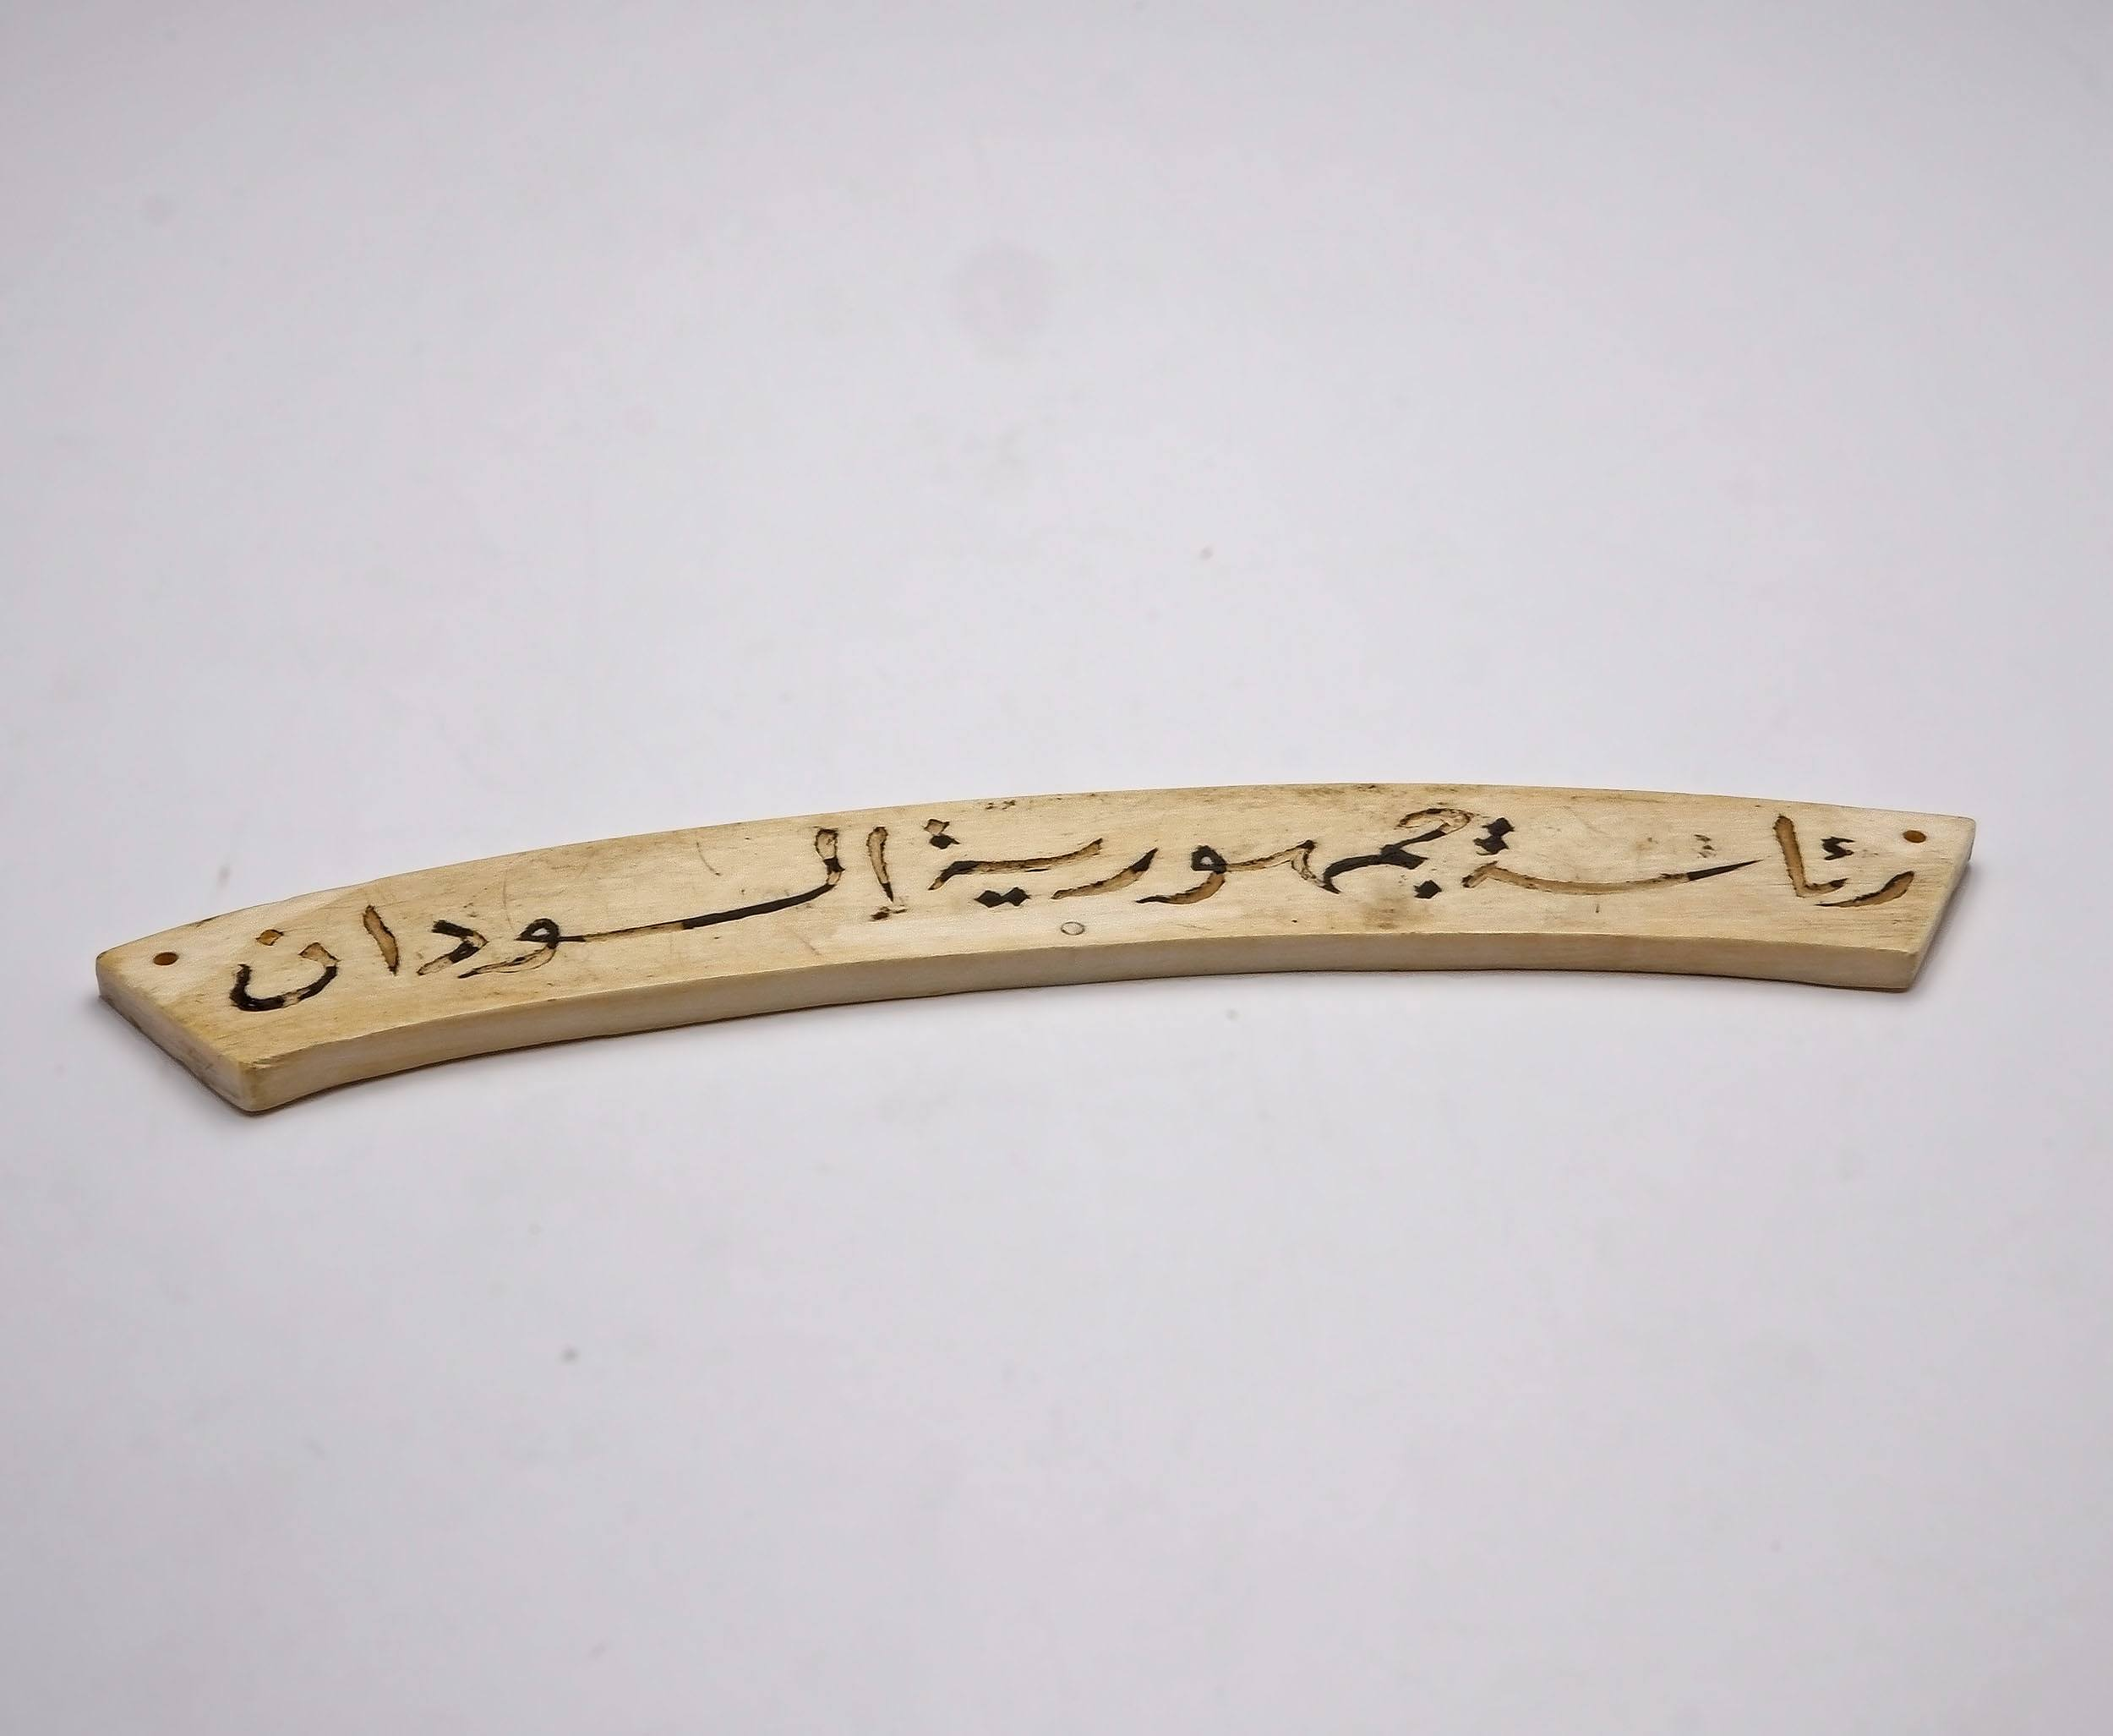 'Antique Ivory Embellishment with Engraved Arabic Inscription'